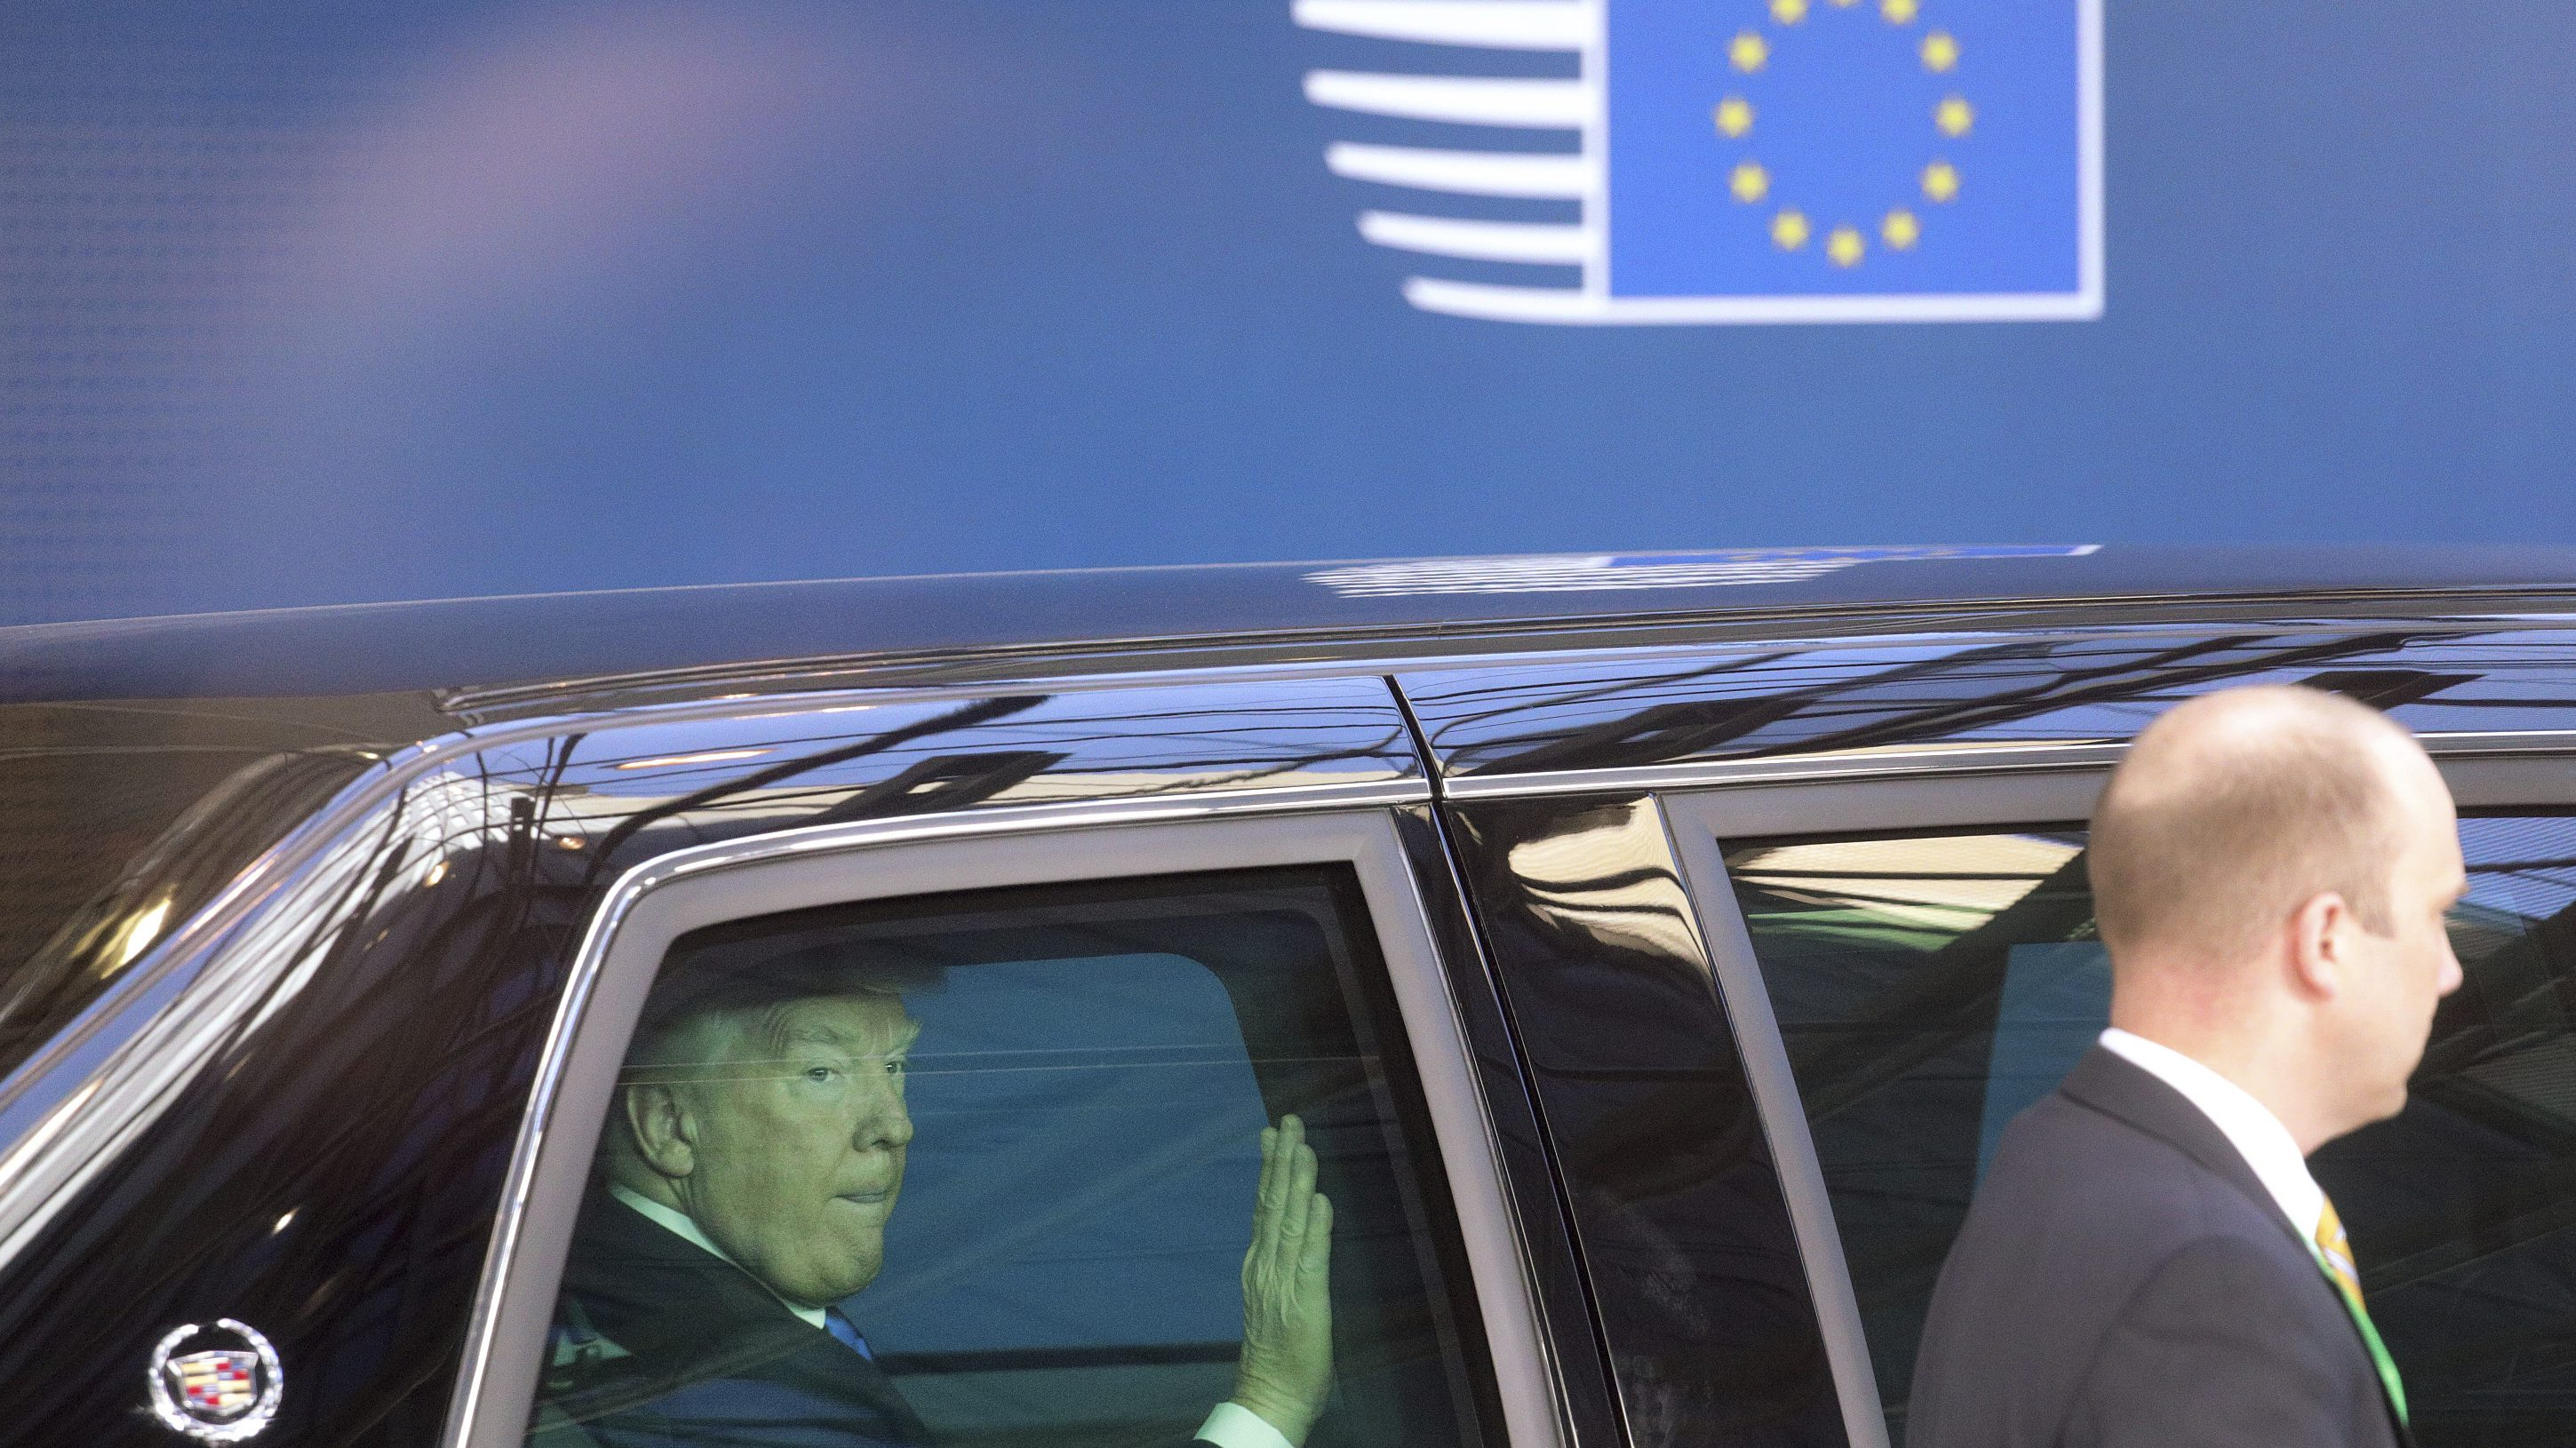 US President Donald Trump leaves the Europa building in Brussels after meeting EU officials Thursday, May 25, 2017. US President Donald Trump arrived in Belgium Wednesday evening and will attend a NATO summit as well as meet EU and Belgian officials. (AP Photo/Olivier Matthys)